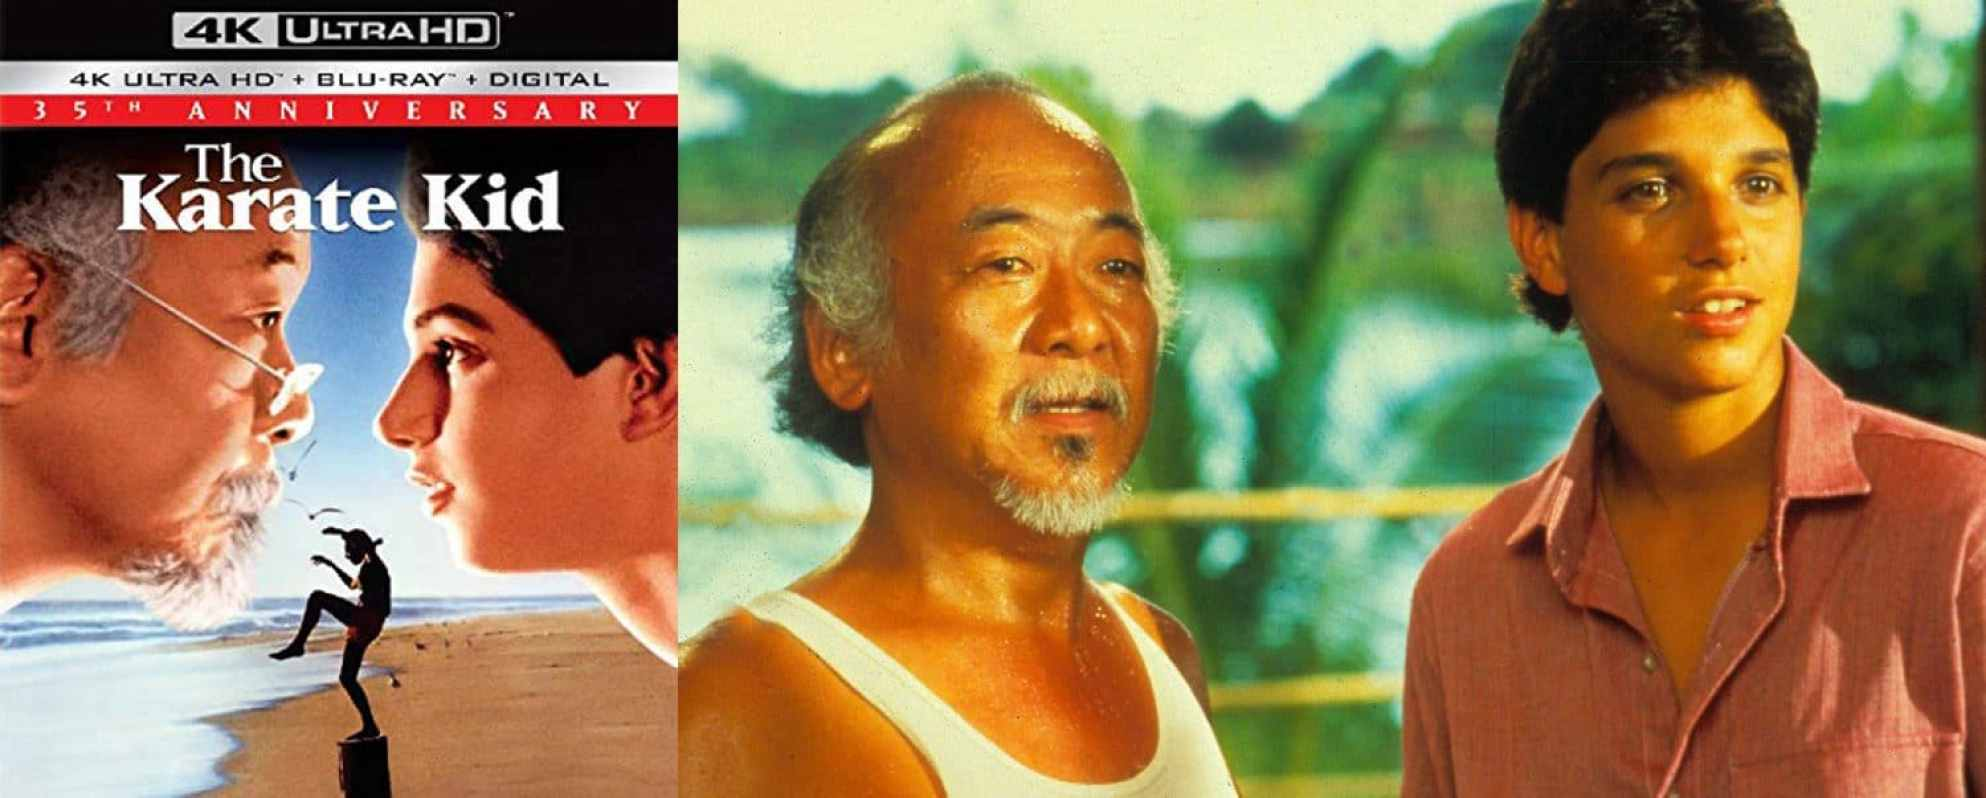 The Karate Kid gets a 4K Ultra HD release this week.